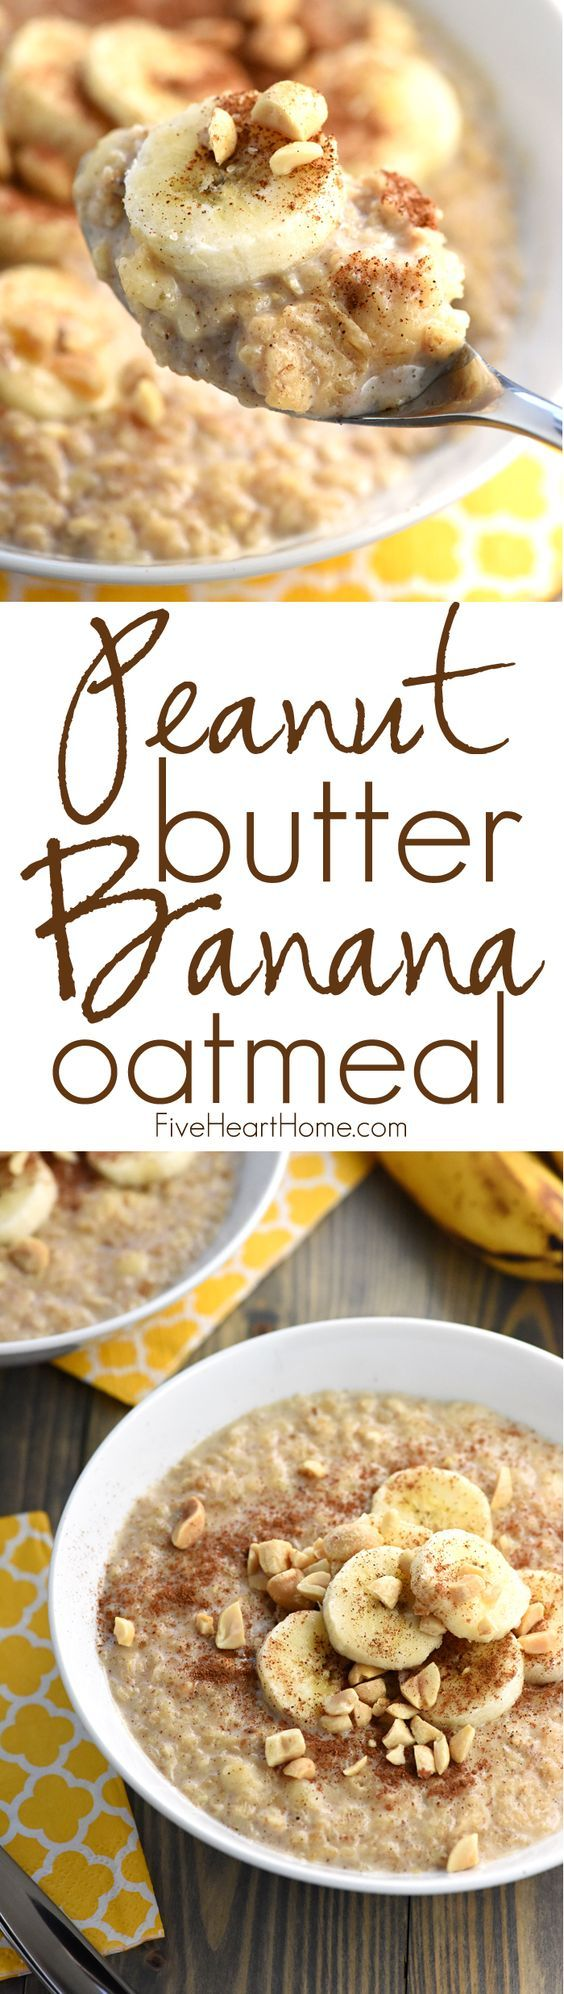 Peanut Butter Banana Oatmeal ~ in just a few short minutes, you can enjoy a hot, wholesome, homemade breakfast flavored with cinnamon, sweetened with honey, and topped with crunchy peanuts! | FiveHeartHome.com: